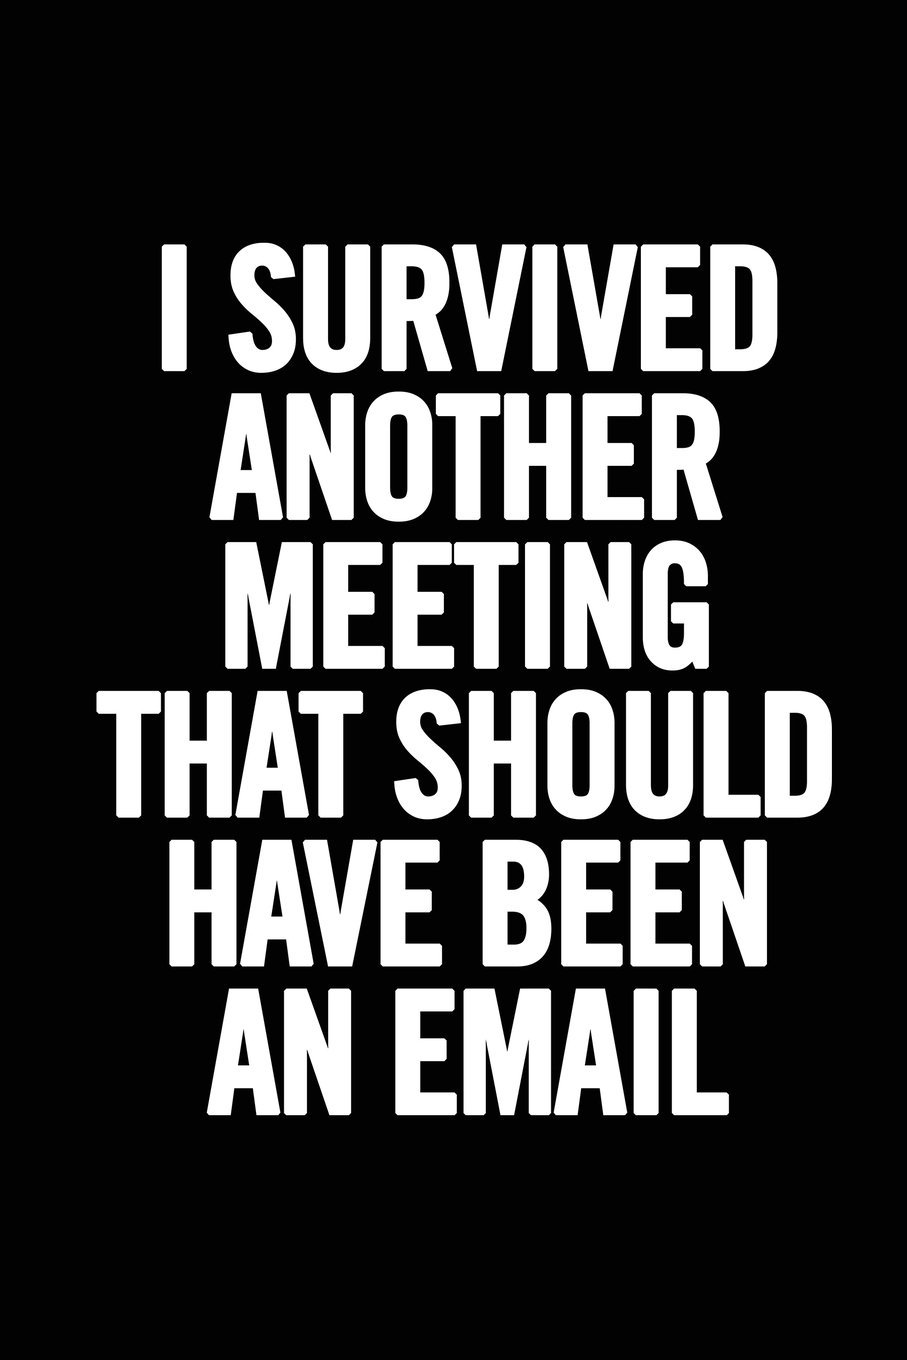 Survived Another Meeting Should Email product image